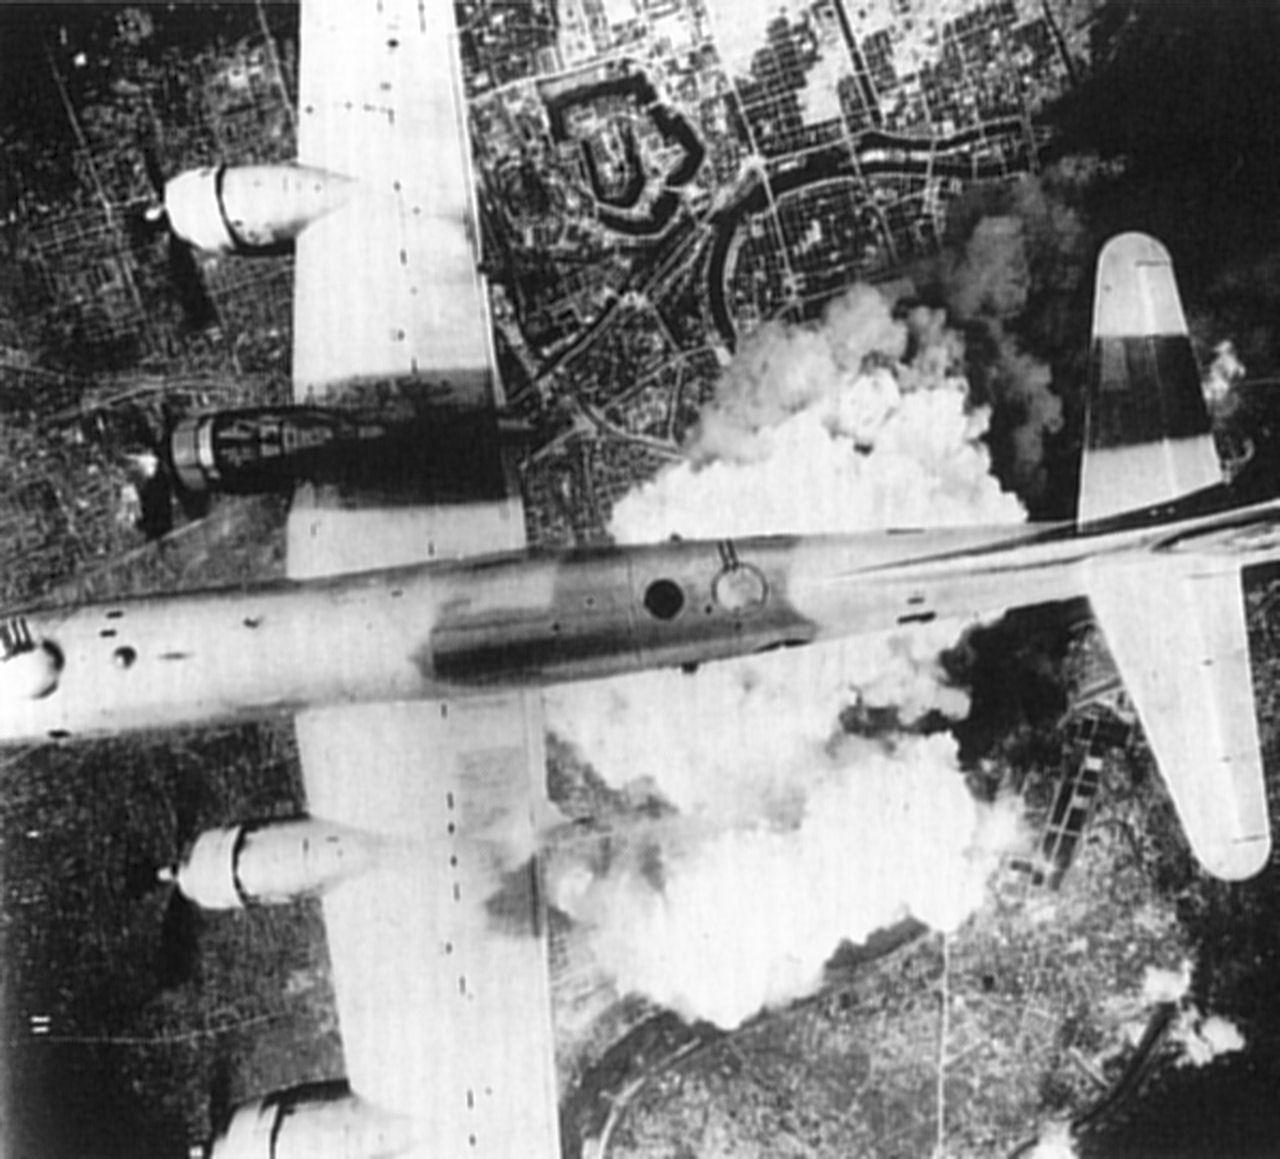 B-29 with an engine problem over Tokyo